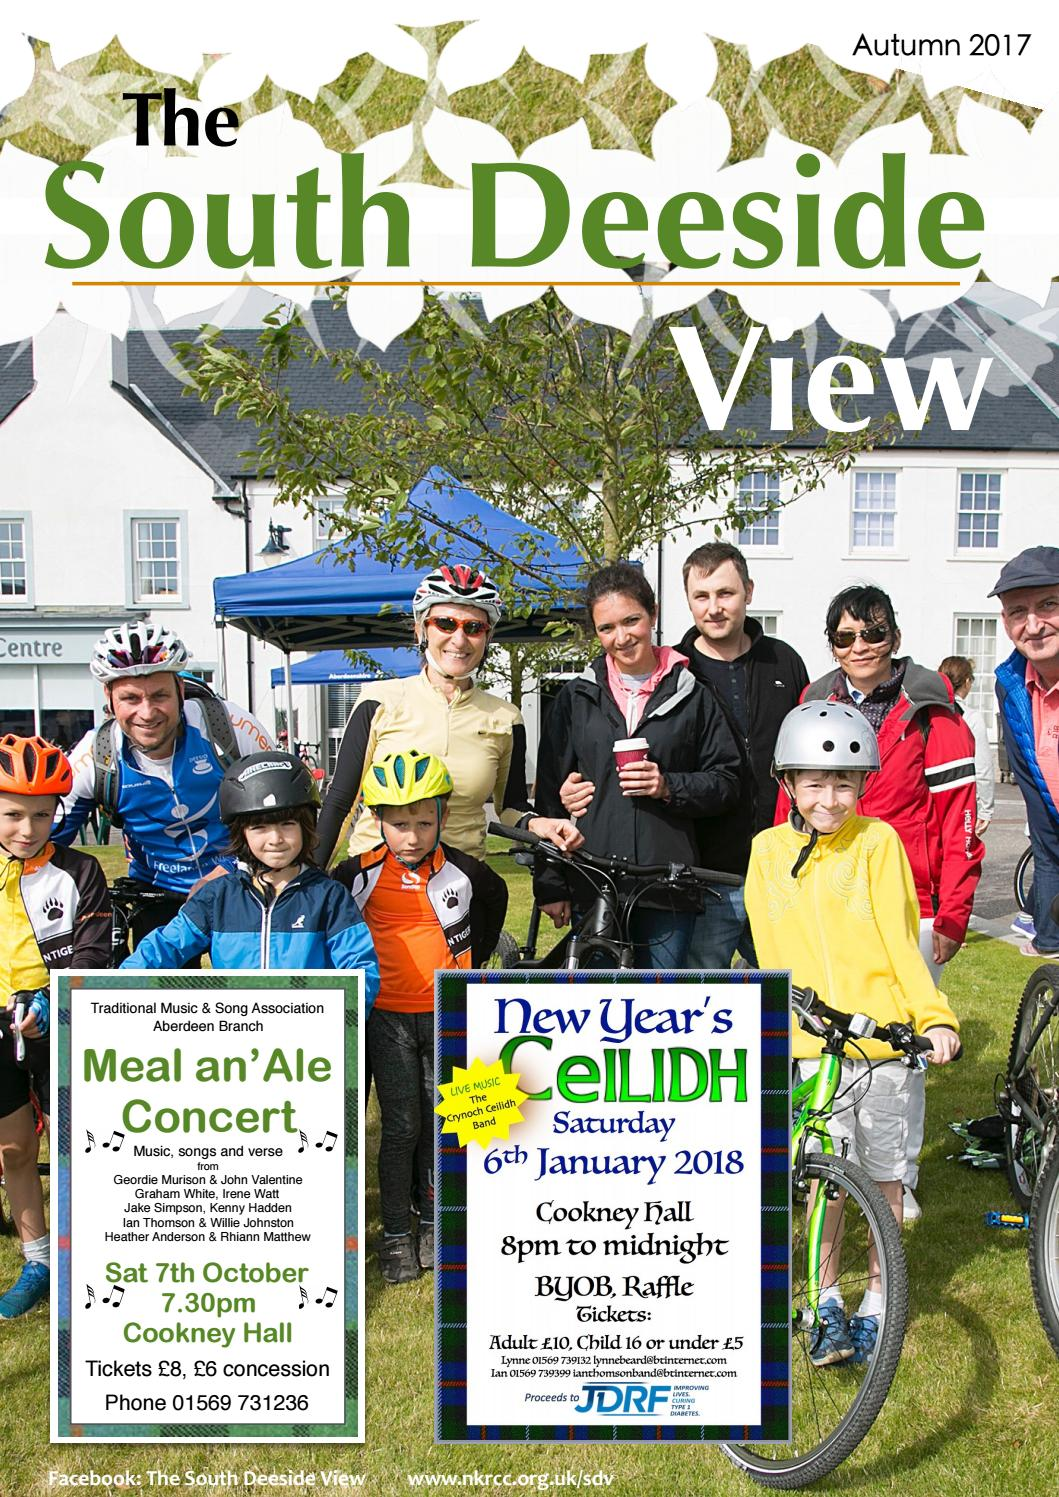 The South Deeside View Autumn 2017 by Lynne Beard - issuu